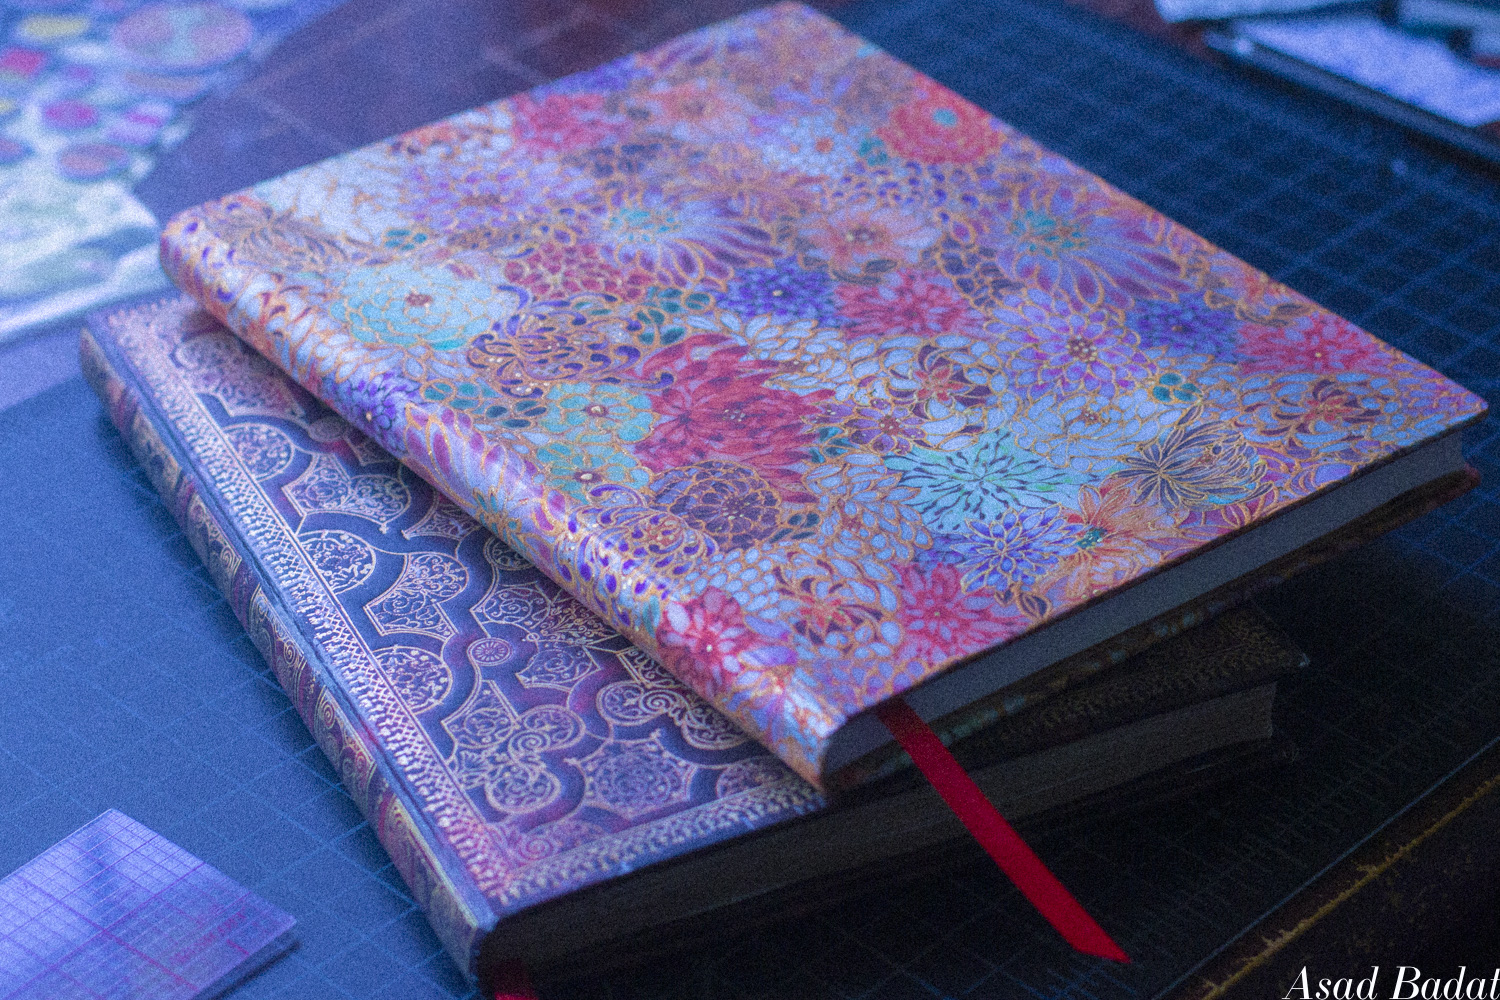 Past and present journals.